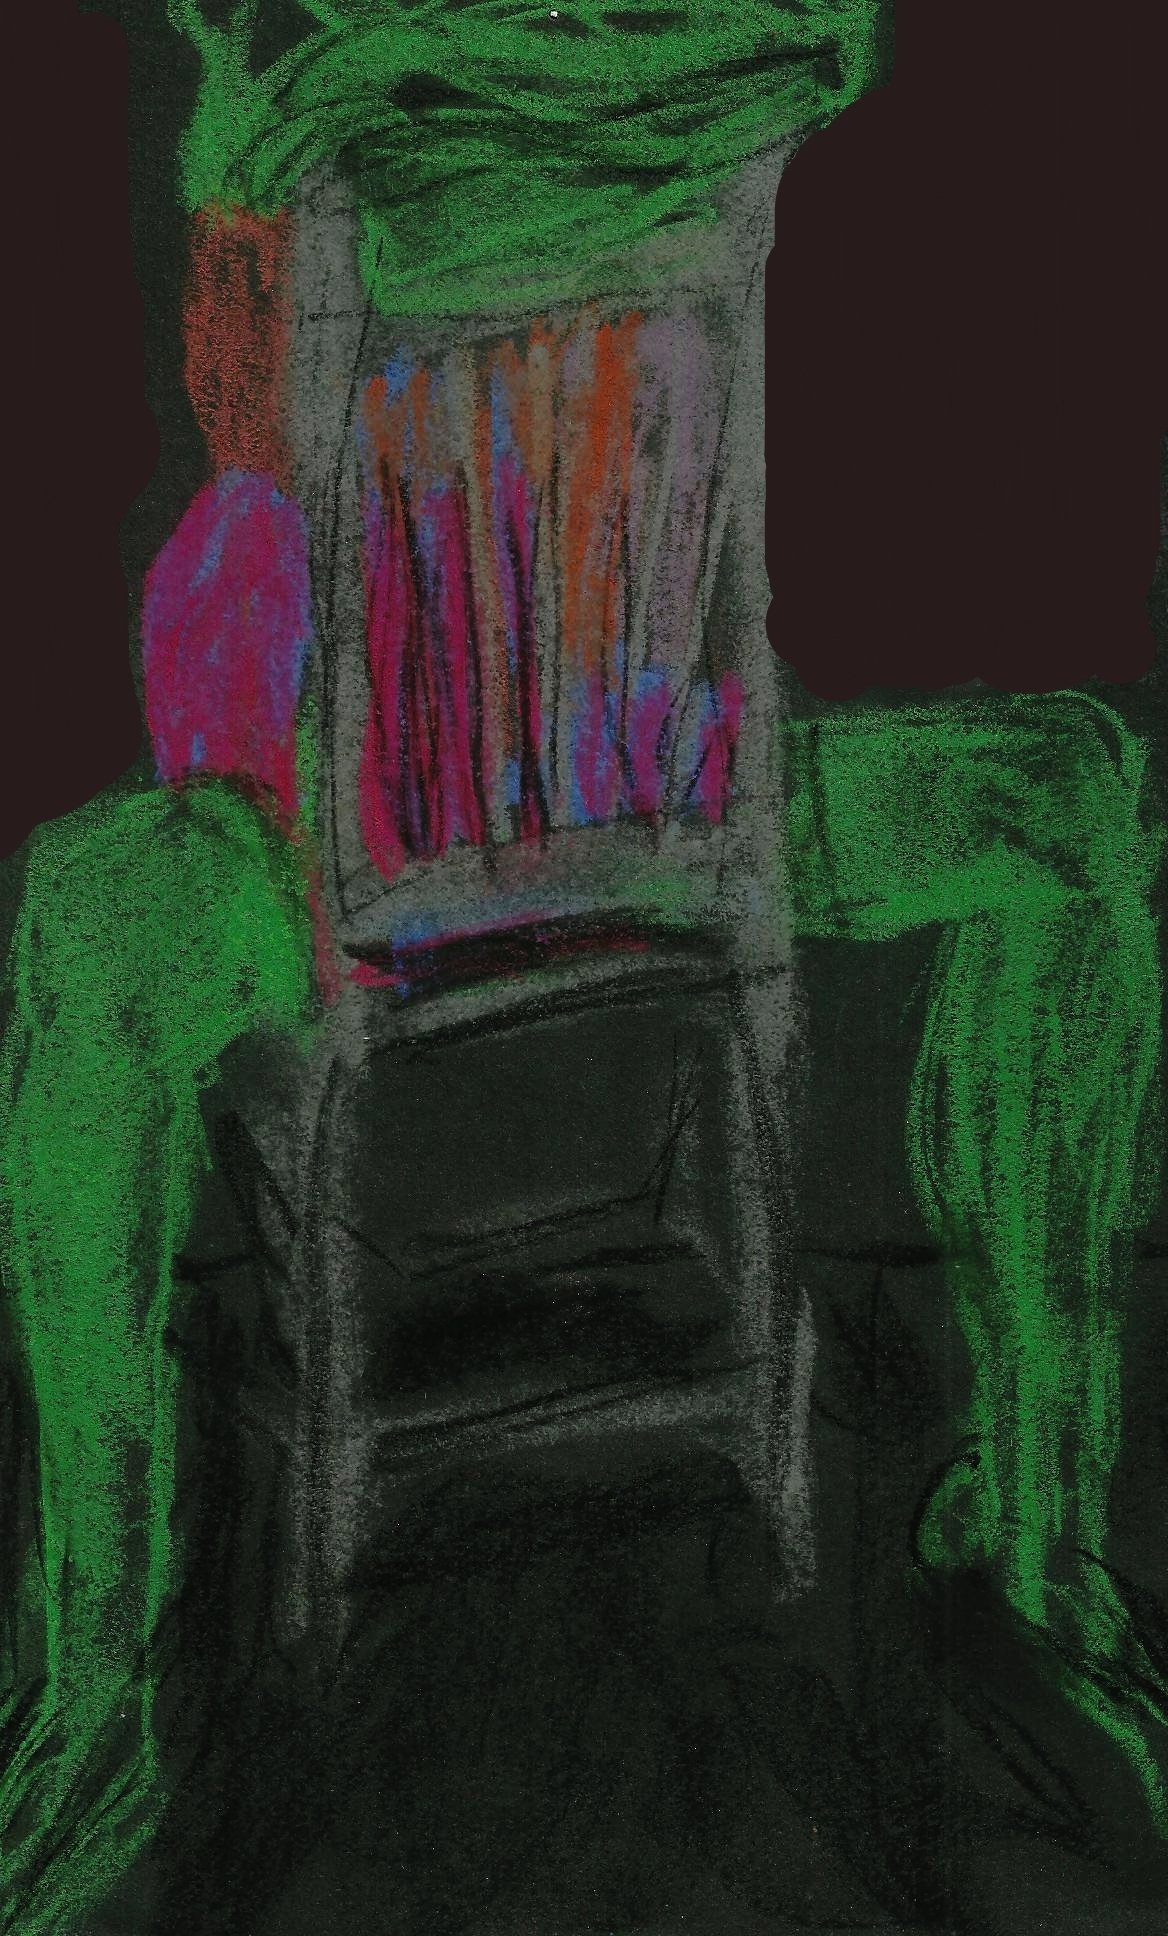 Green Model Sitting on Chair